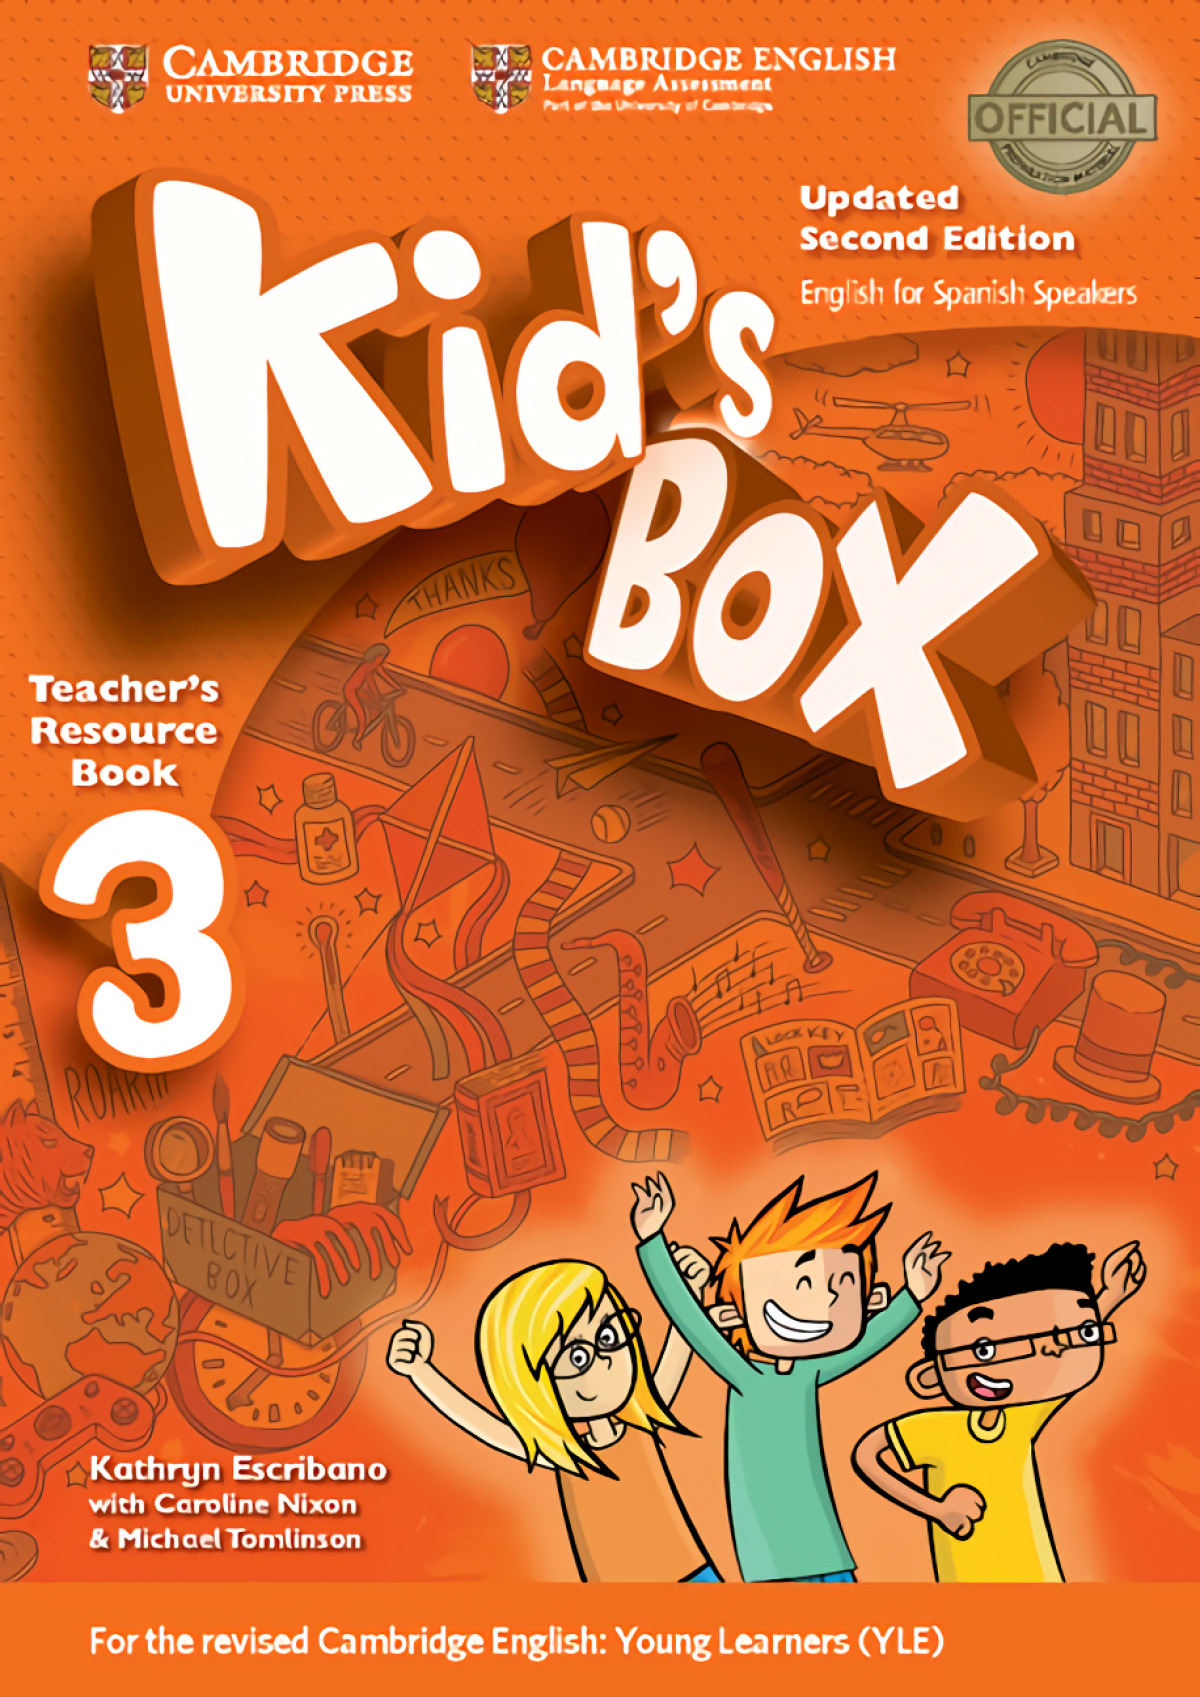 Kid's Box Level 3 Teacher's Resource Book with Audio CDs (2) Updated English for Spanish Speakers 2nd Edition